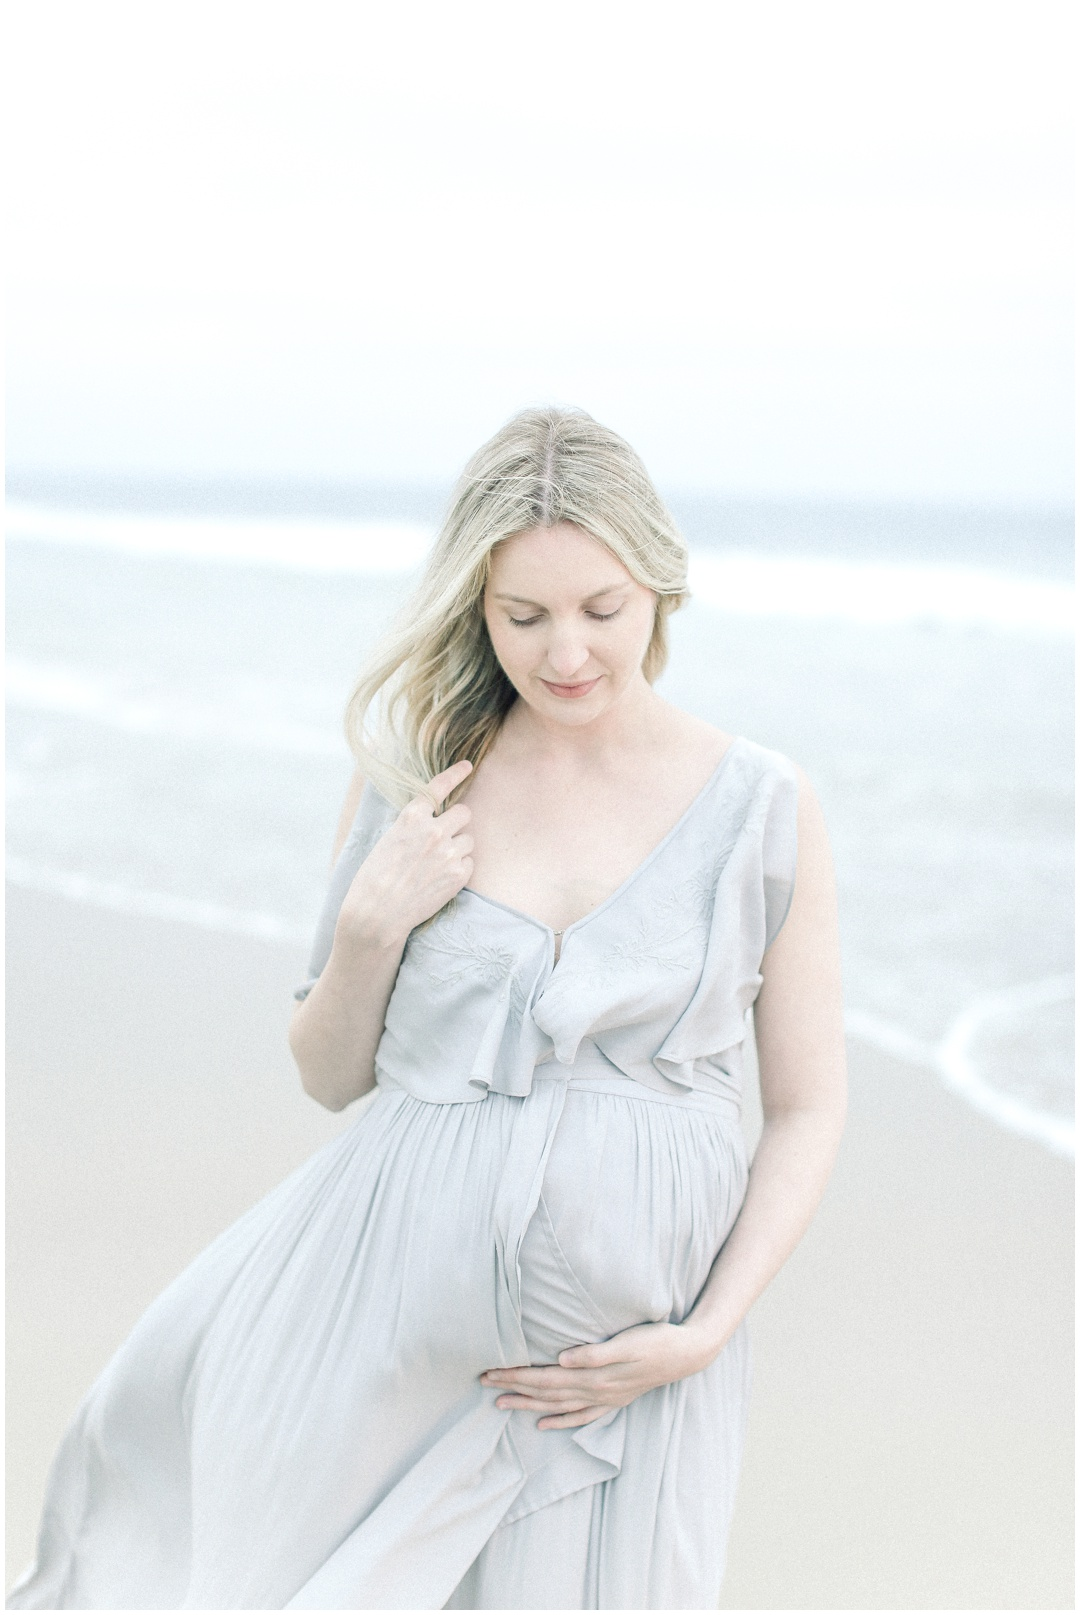 Newport_Beach_Newborn_Light_Airy_Natural_Photographer_Newport_Beach_Photographer_Orange_County_Family_Photographer_Cori_Kleckner_Photography_Huntington_Beach_Photographer_Family_OC_Maternity_Jennifer_Spohn_Rahul_Spohn_3626.jpg